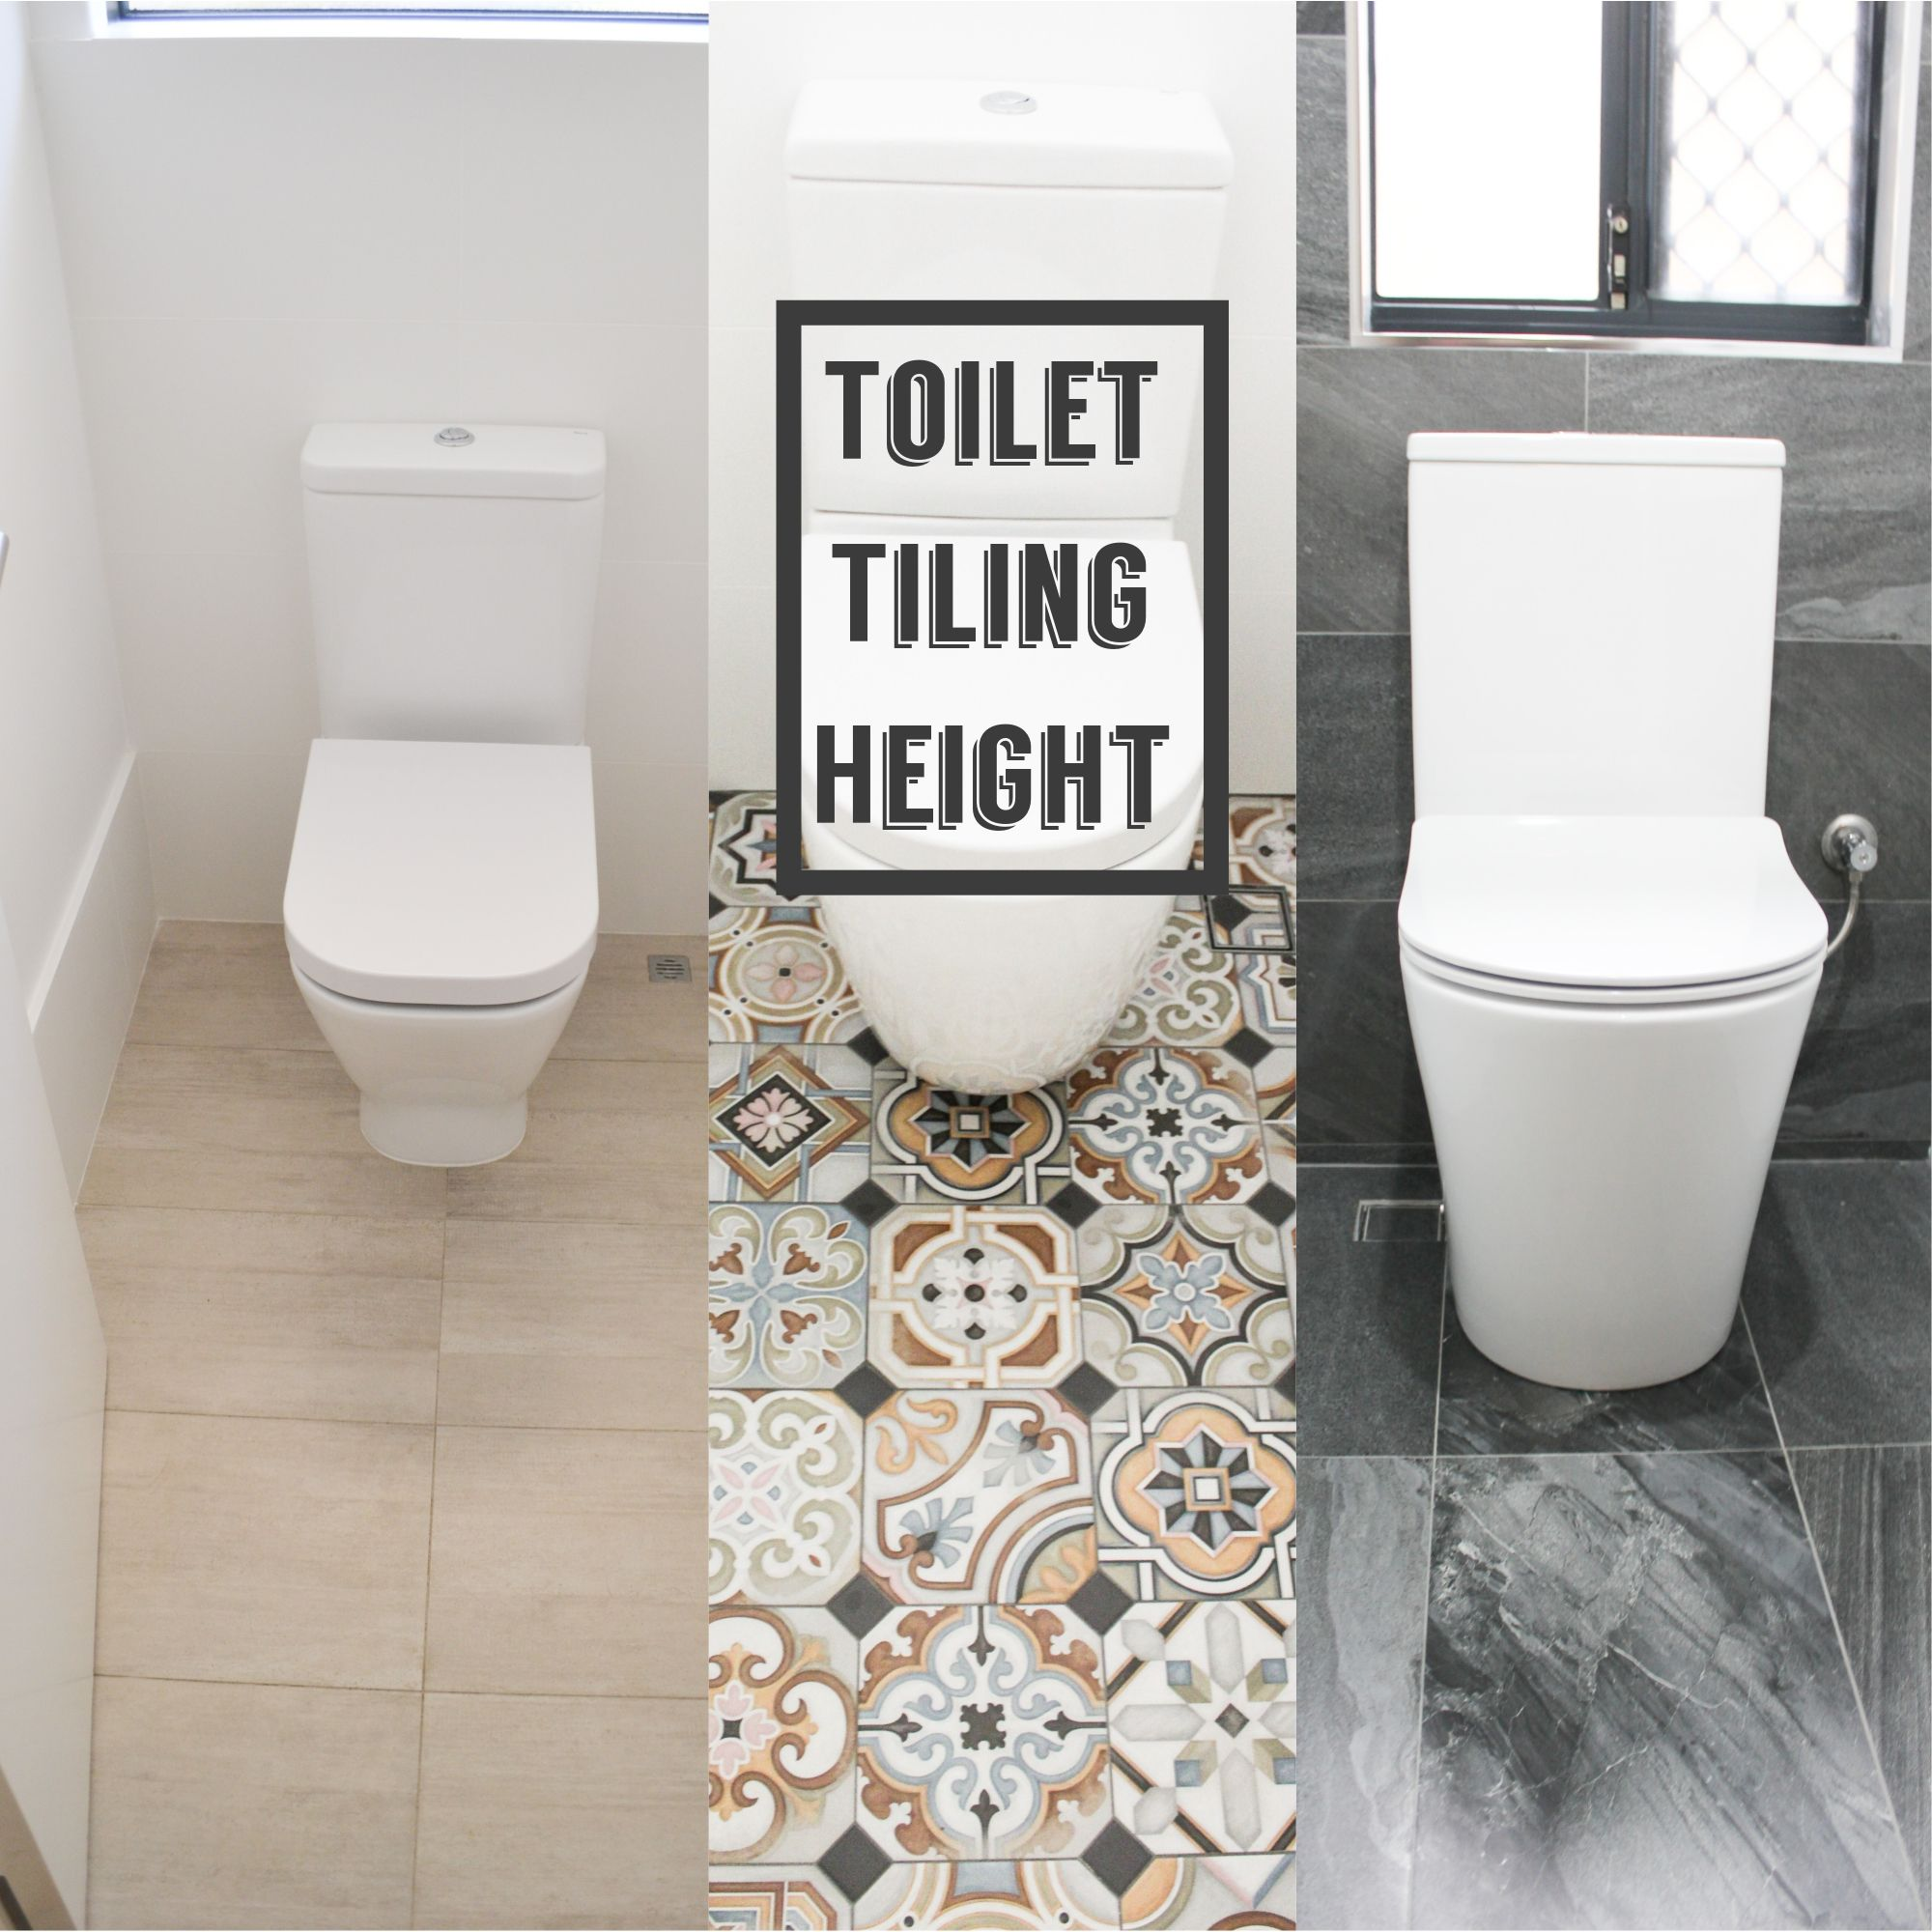 To Ceiling Toilet Tiling Full Height Tiling Advice Full Height Tiling Advice How Bathroom Renovations Perth Bathroom Renovations Bathroom Remodel Designs